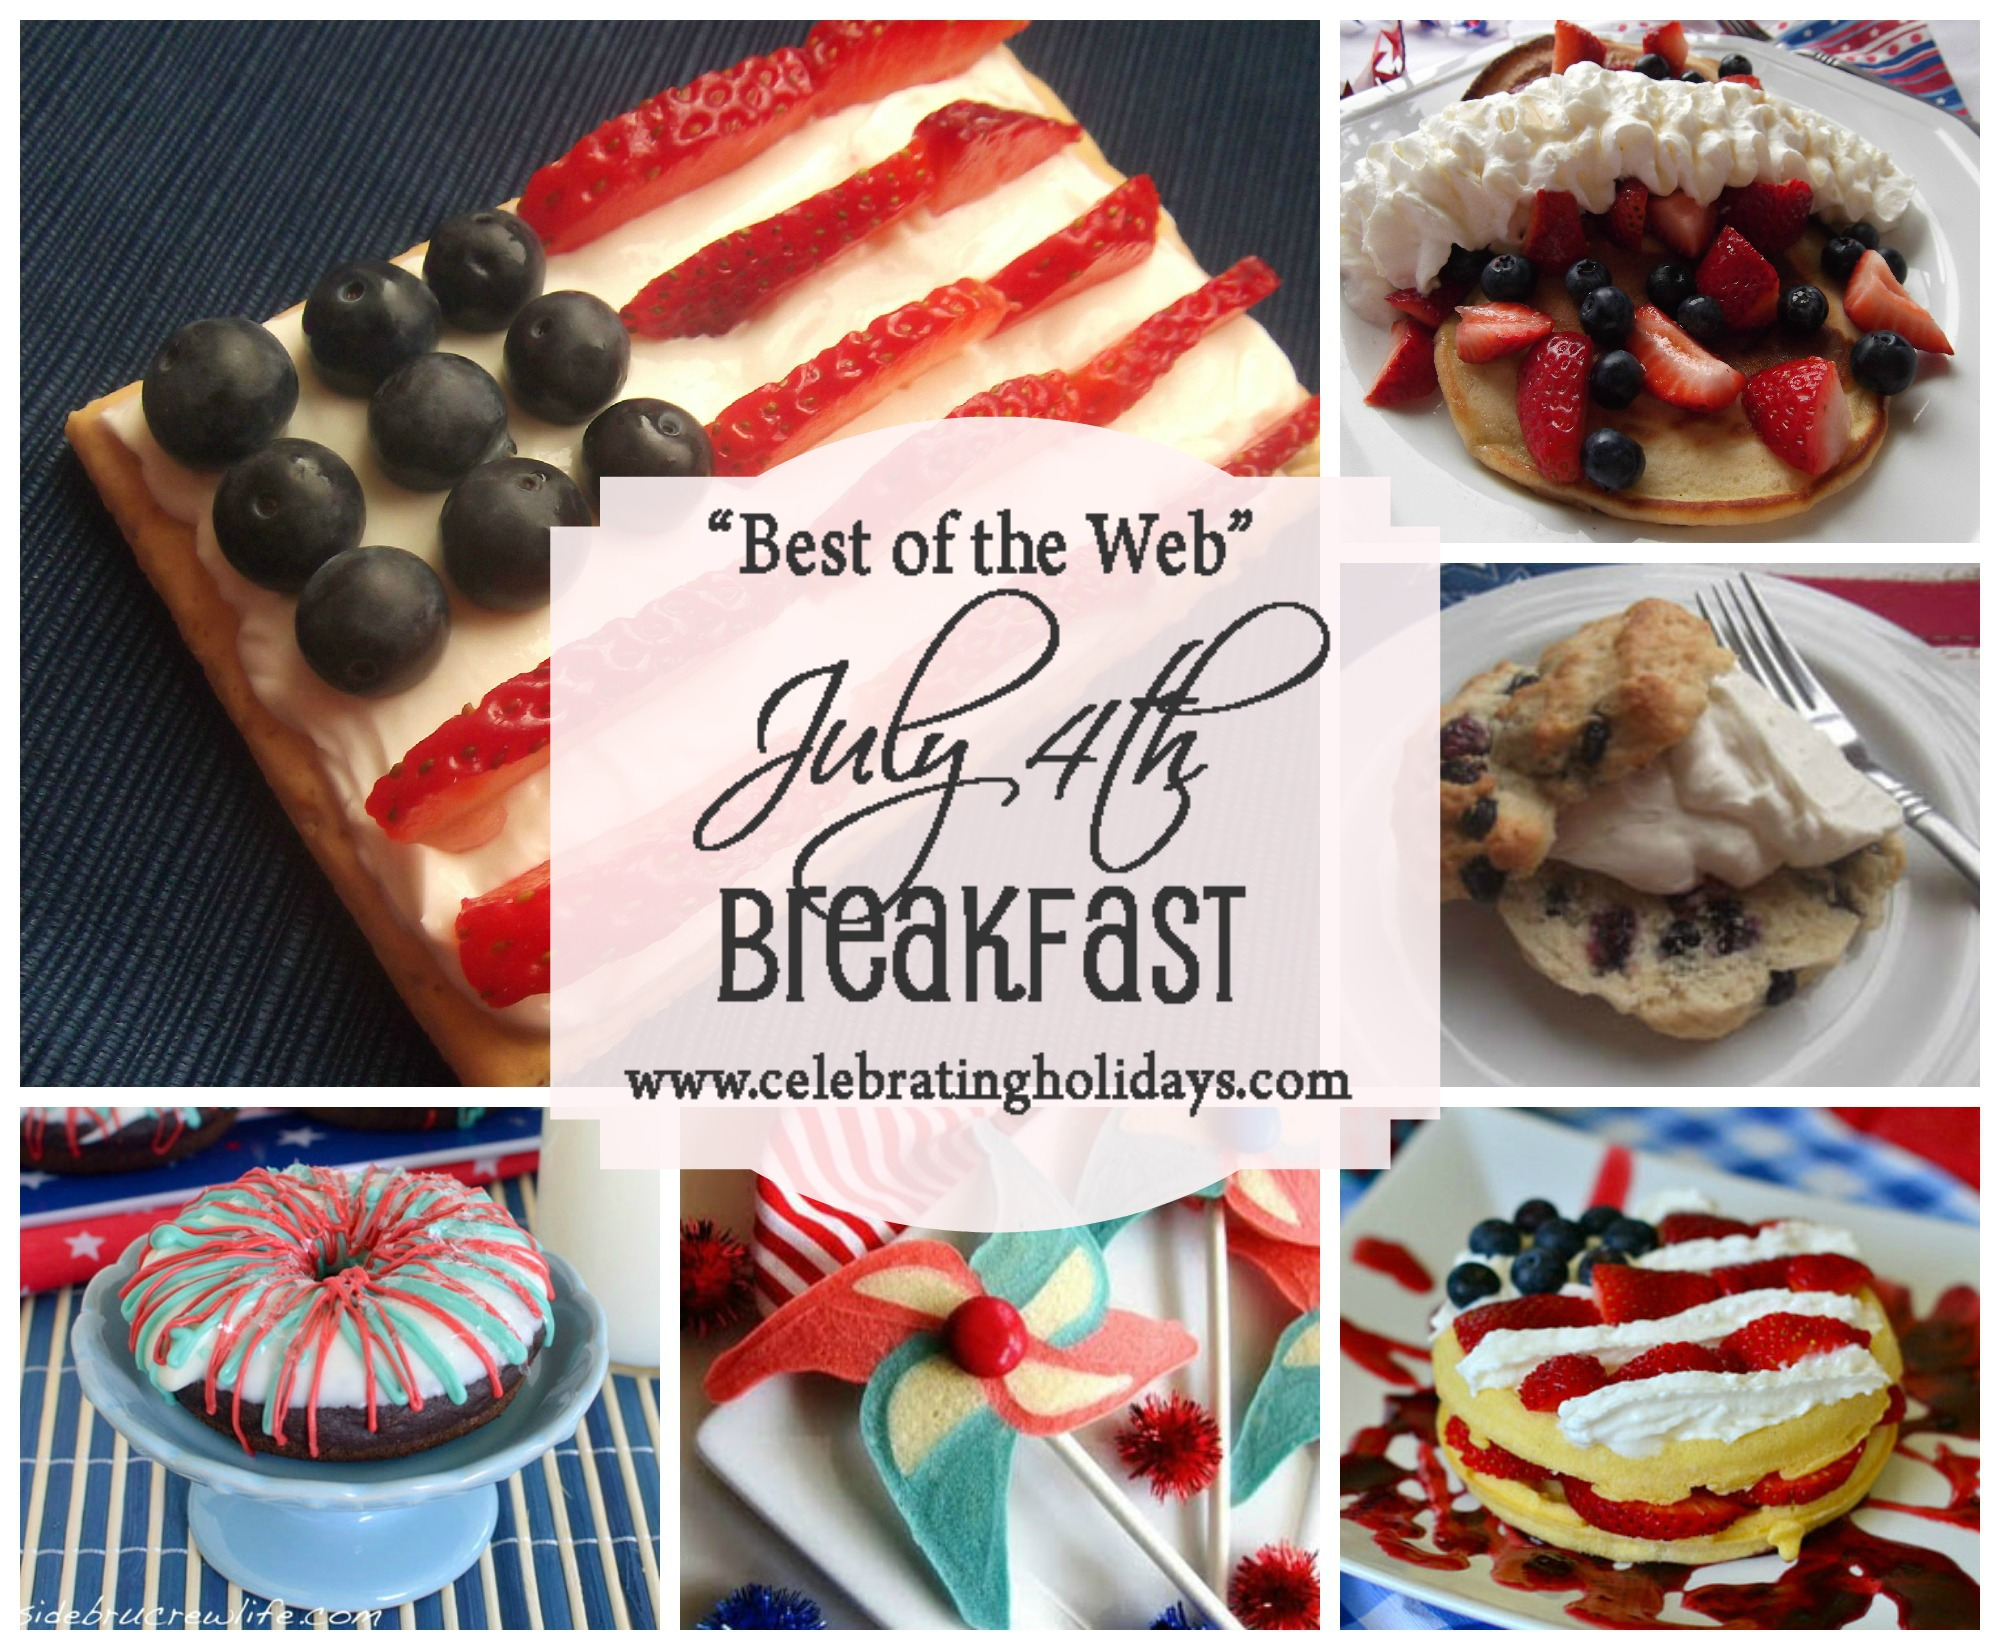 Best of the Web July 4th Breakfast Ideas